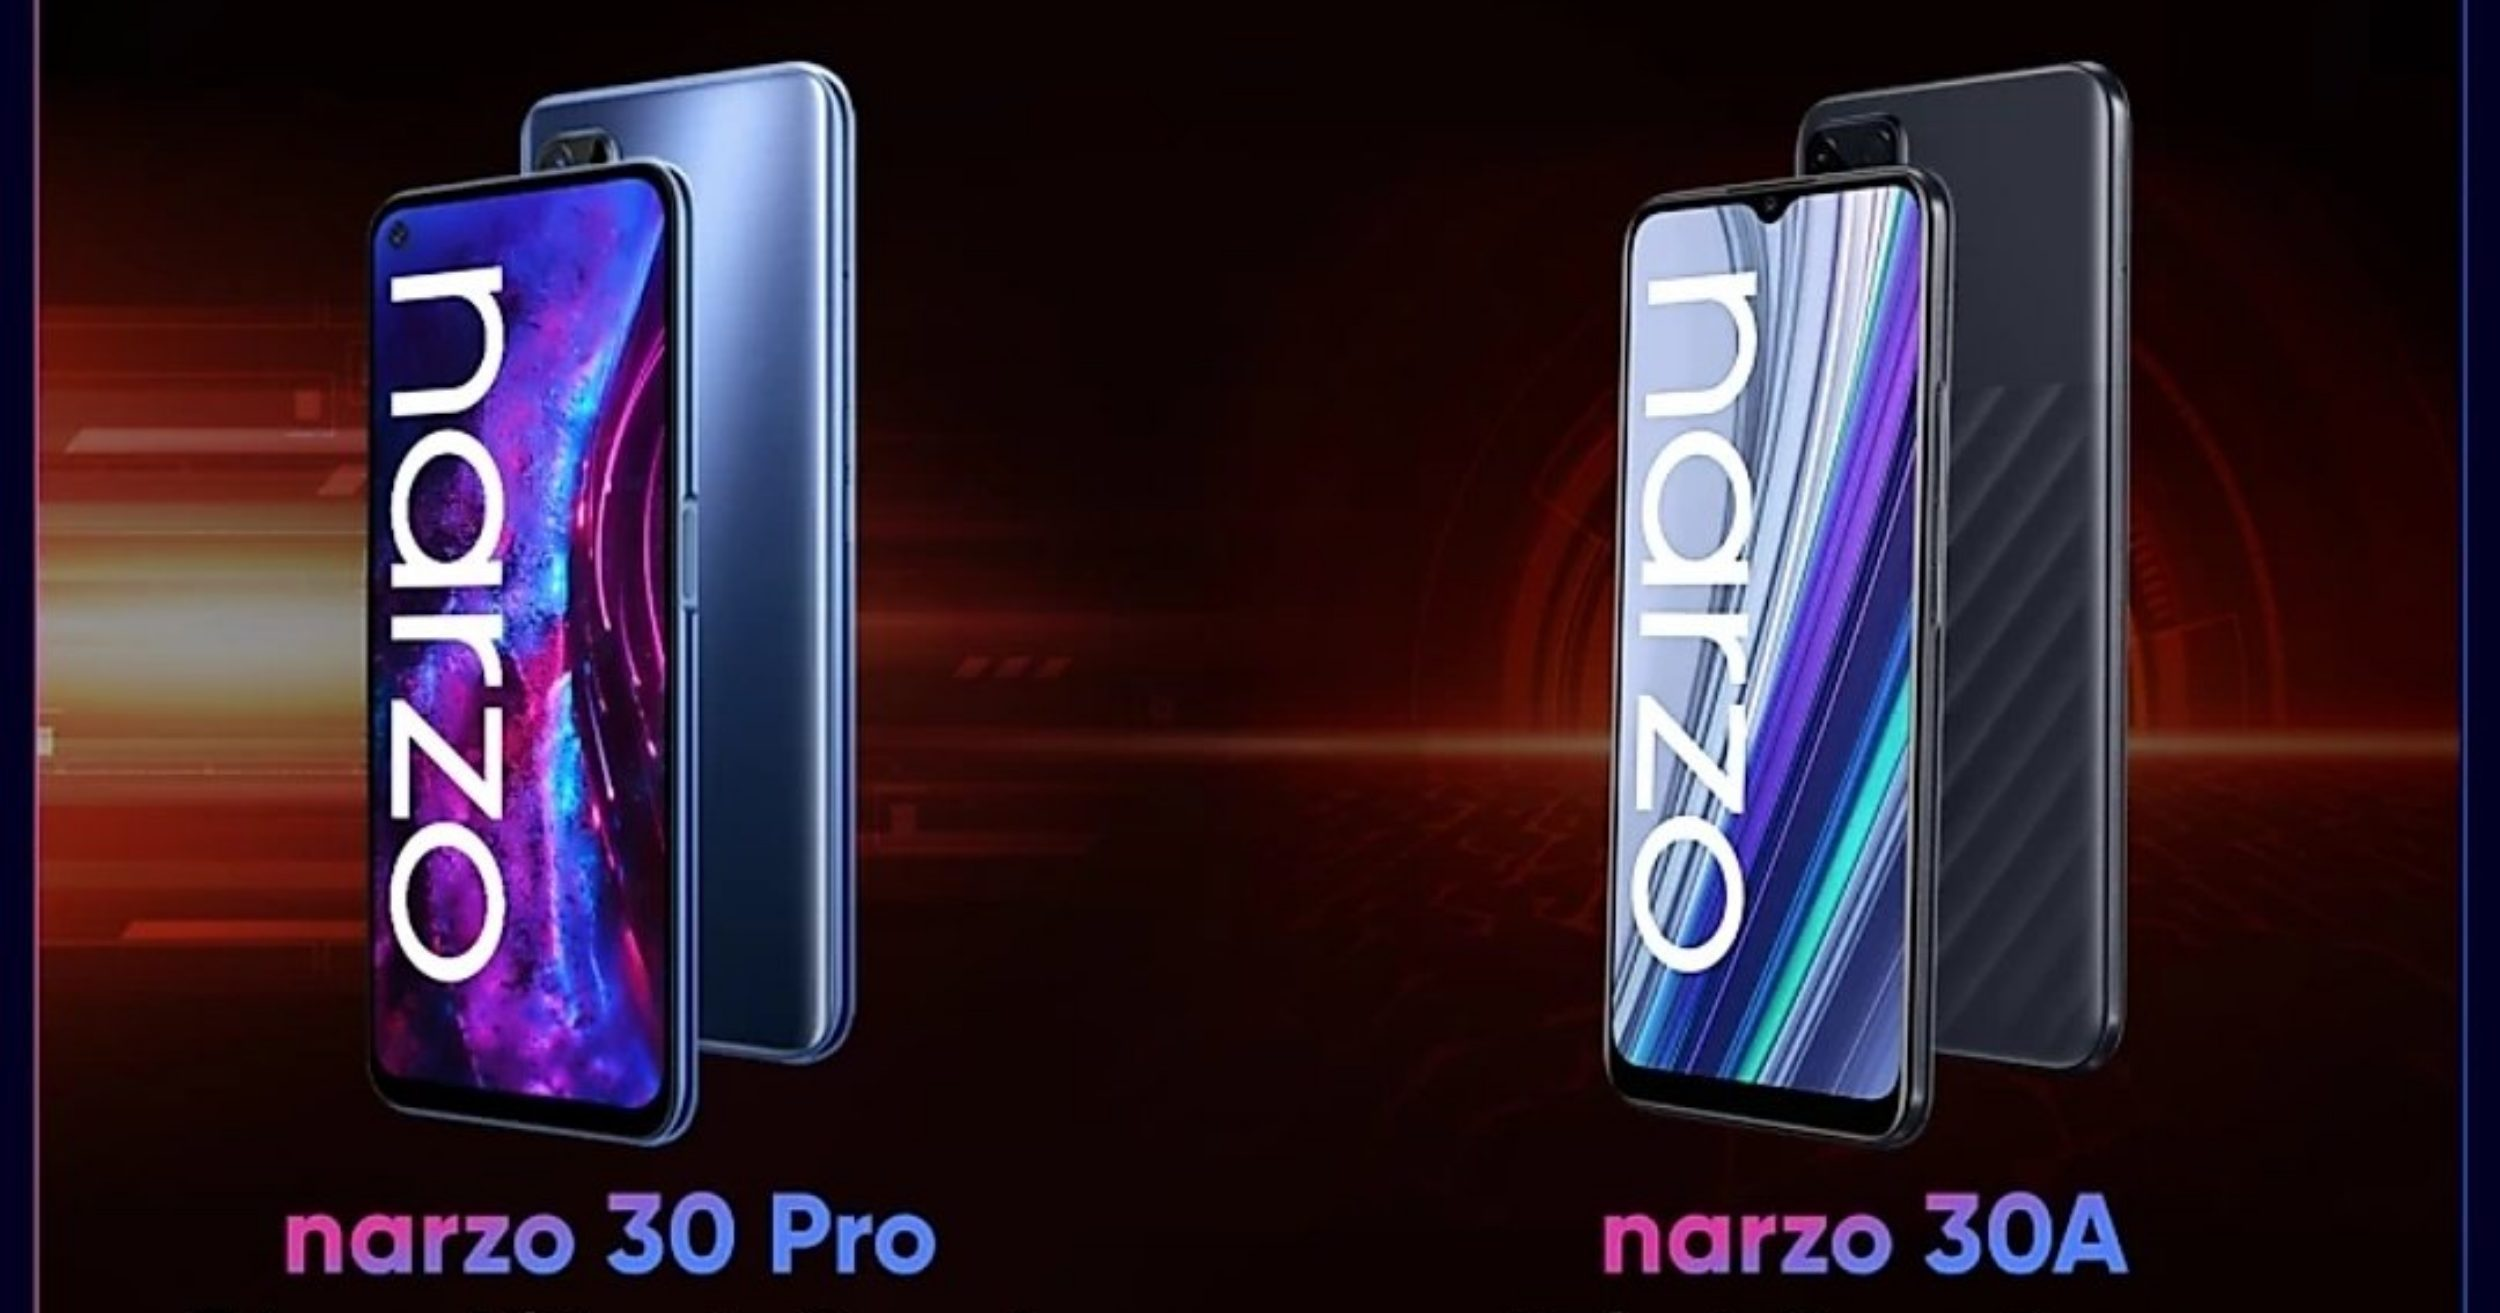 more-narzo-30-pro-leaks-as-we-get-closer-to-launch